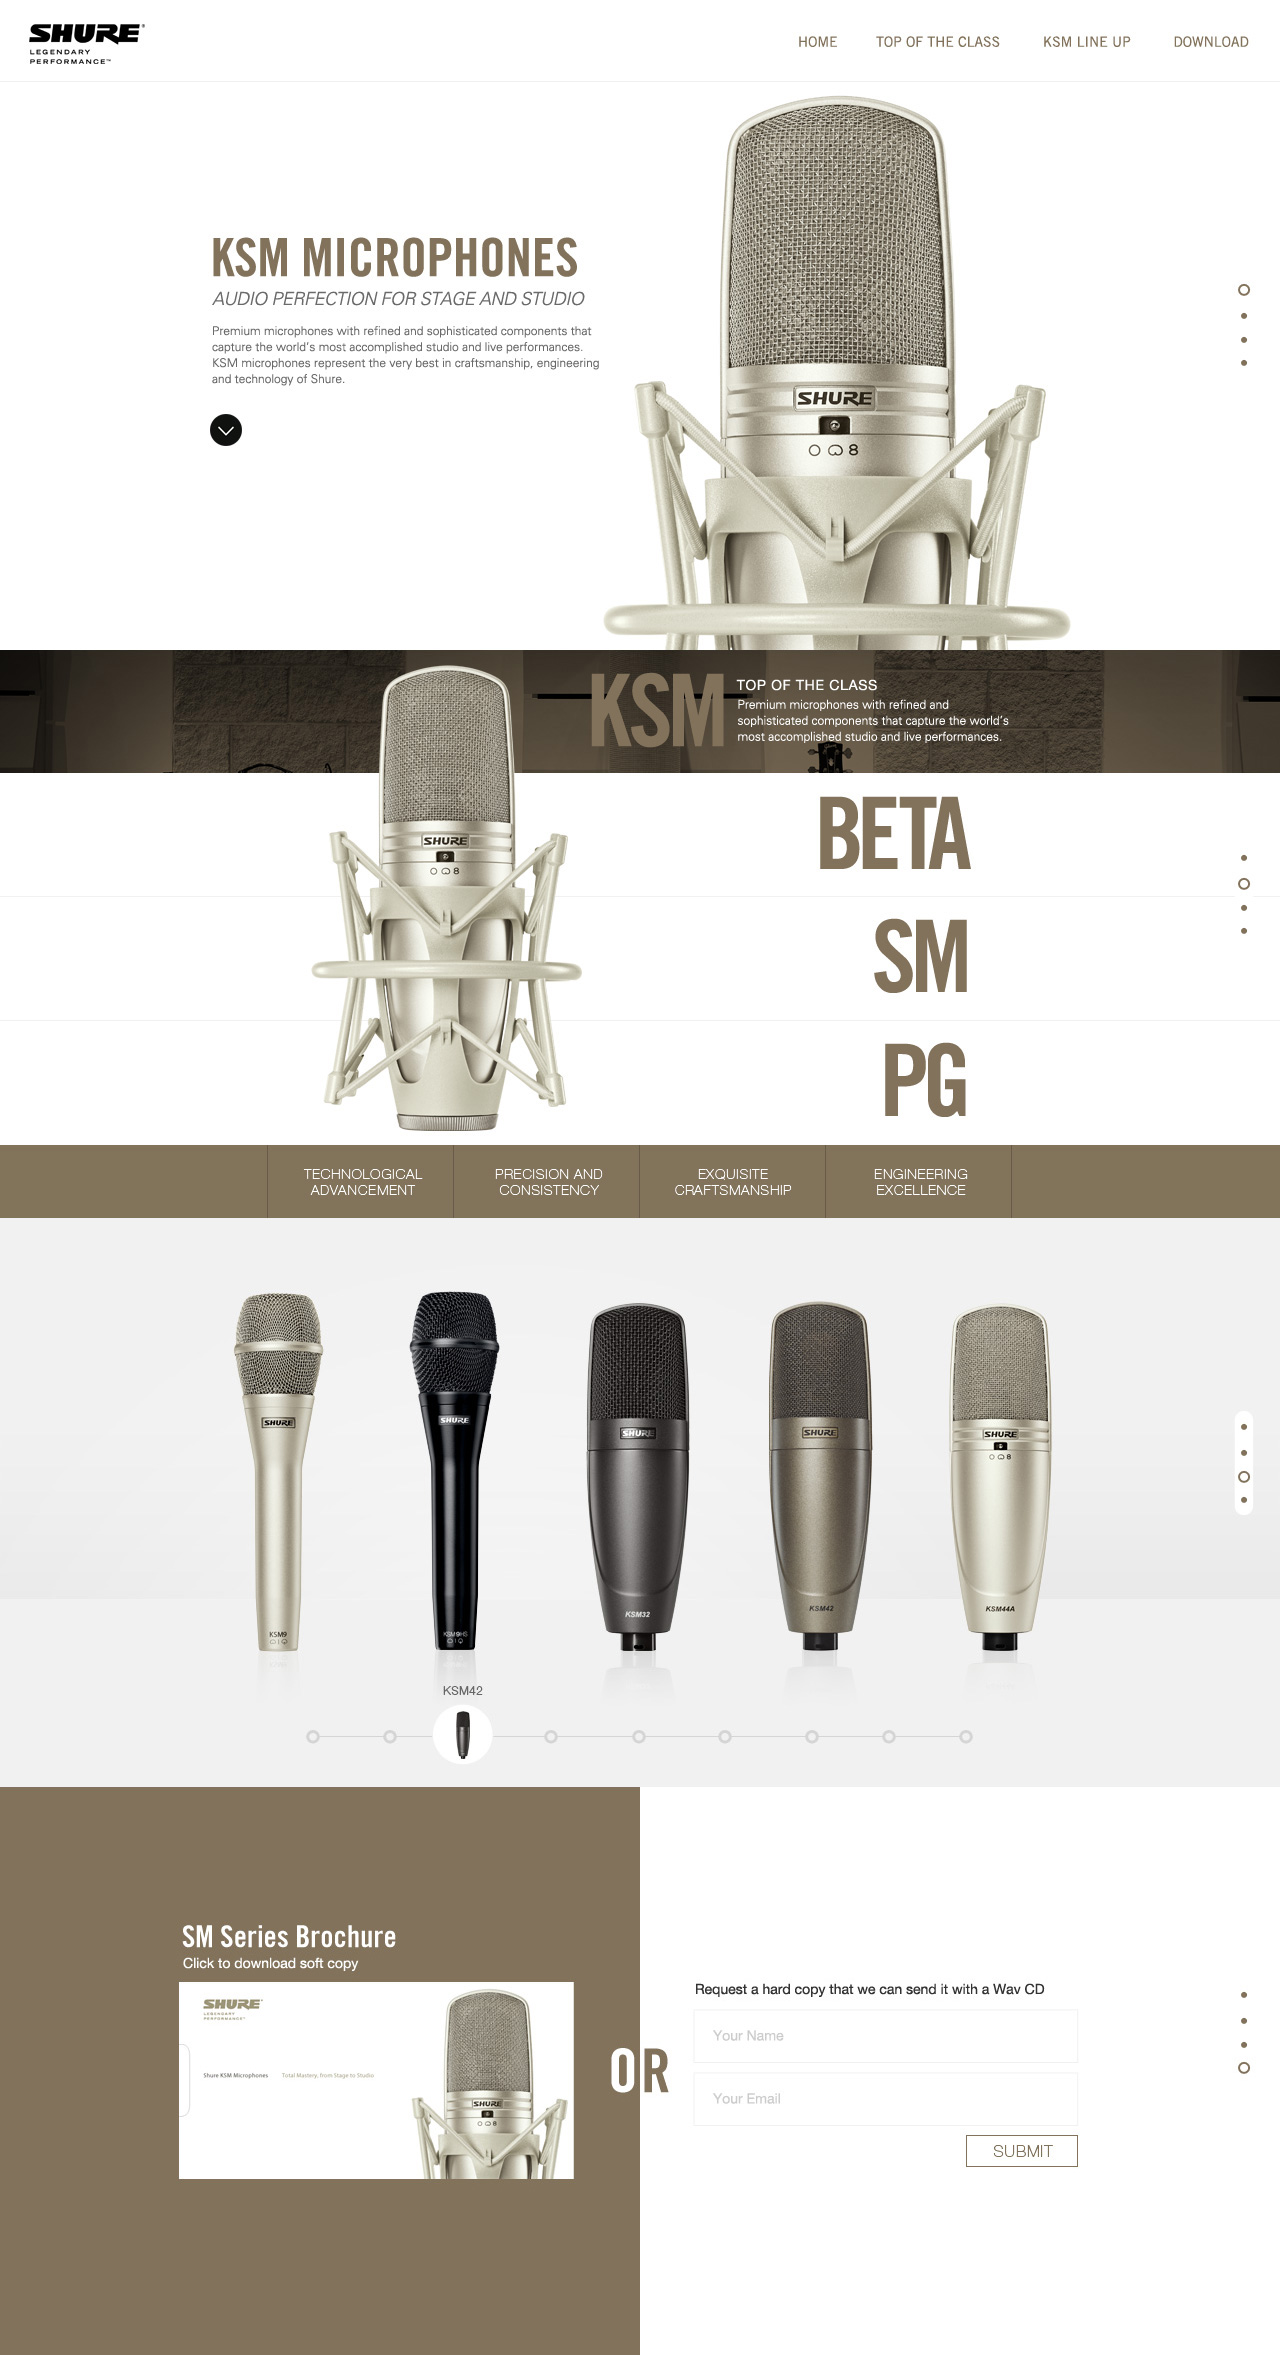 Shure KSM Microphones Website Screenshot